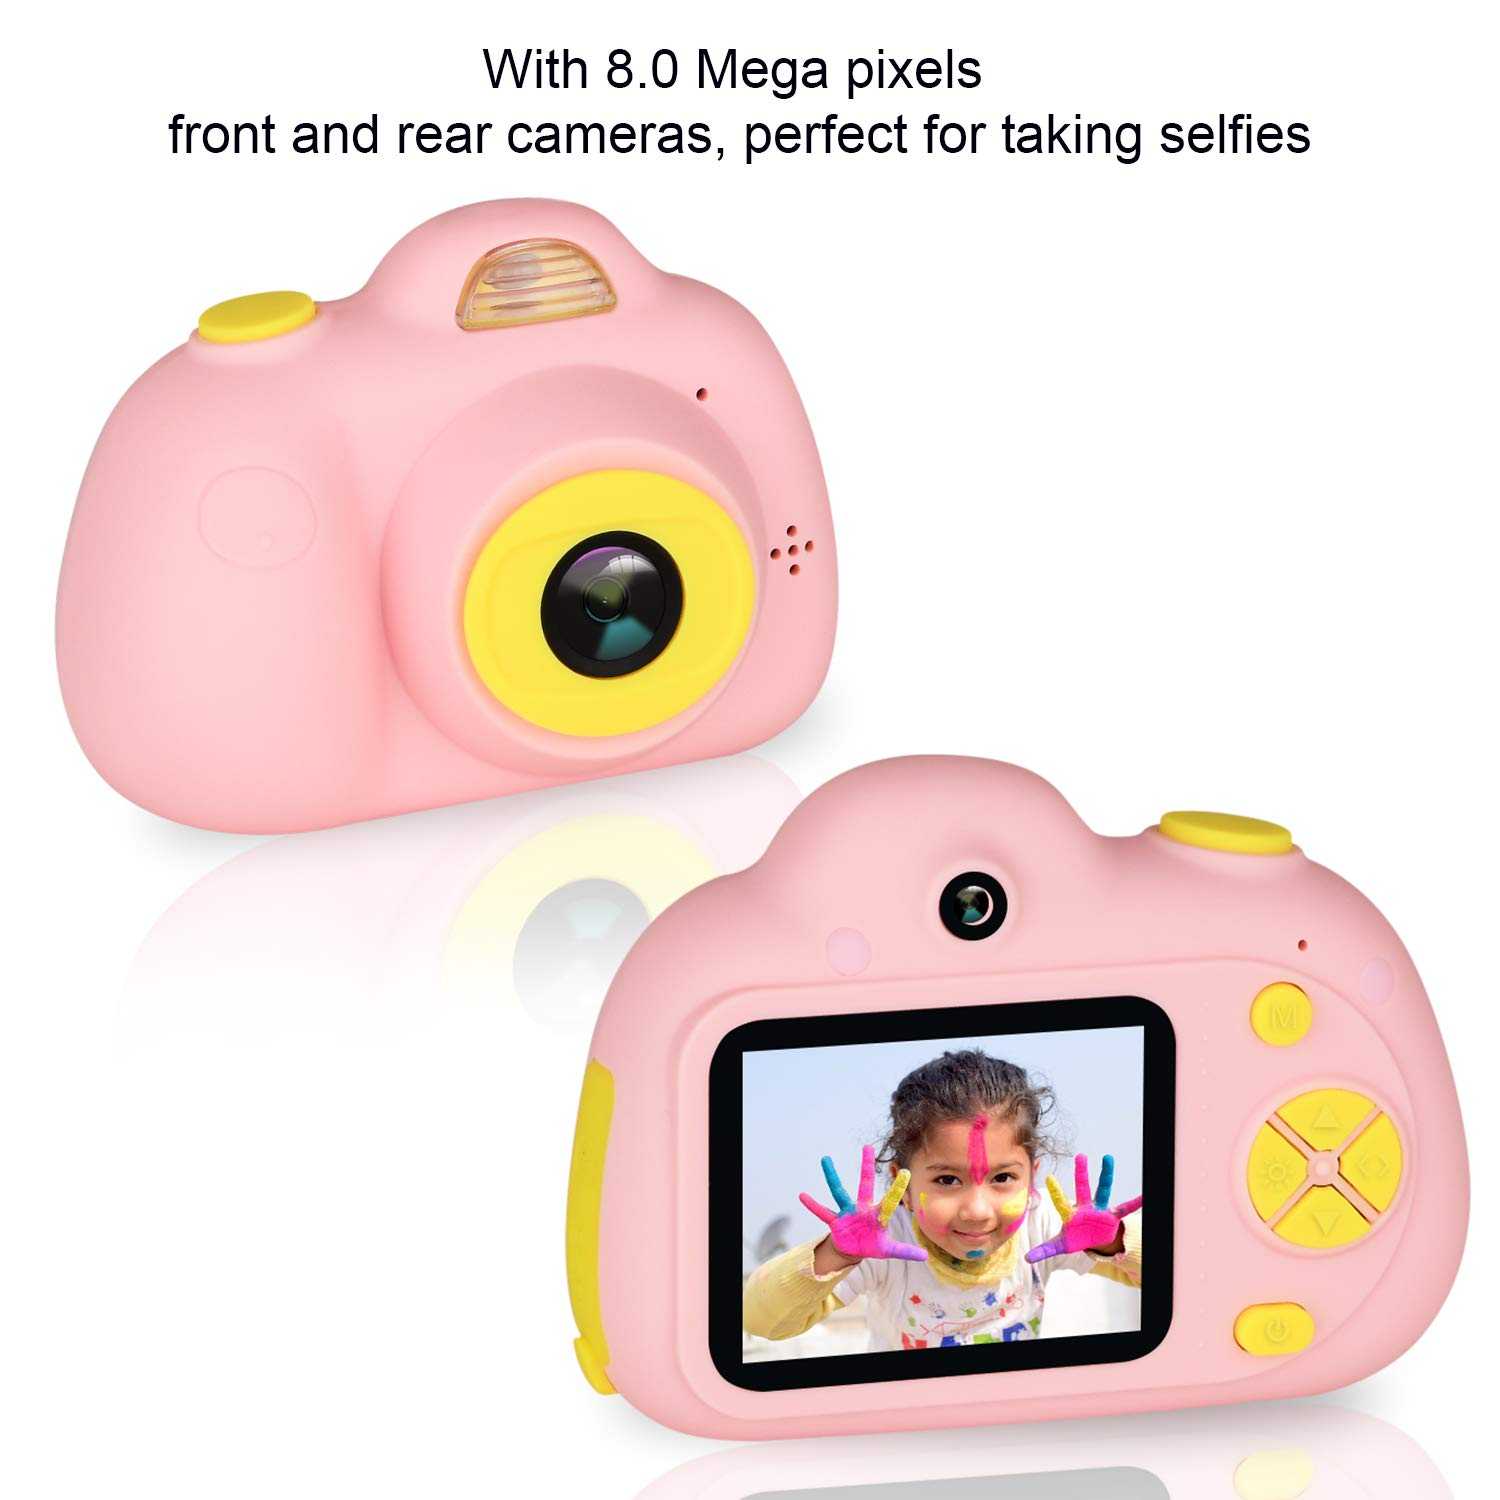 eyesen Kids Camera for 3-10 Year Old Children 1080P HD Rechargeable Digital Child Camcorder Shockproof Selfie Mini Camera with Soft Silicone Shell and 2 Inch Screen for Kids, Pink by eyesen (Image #3)